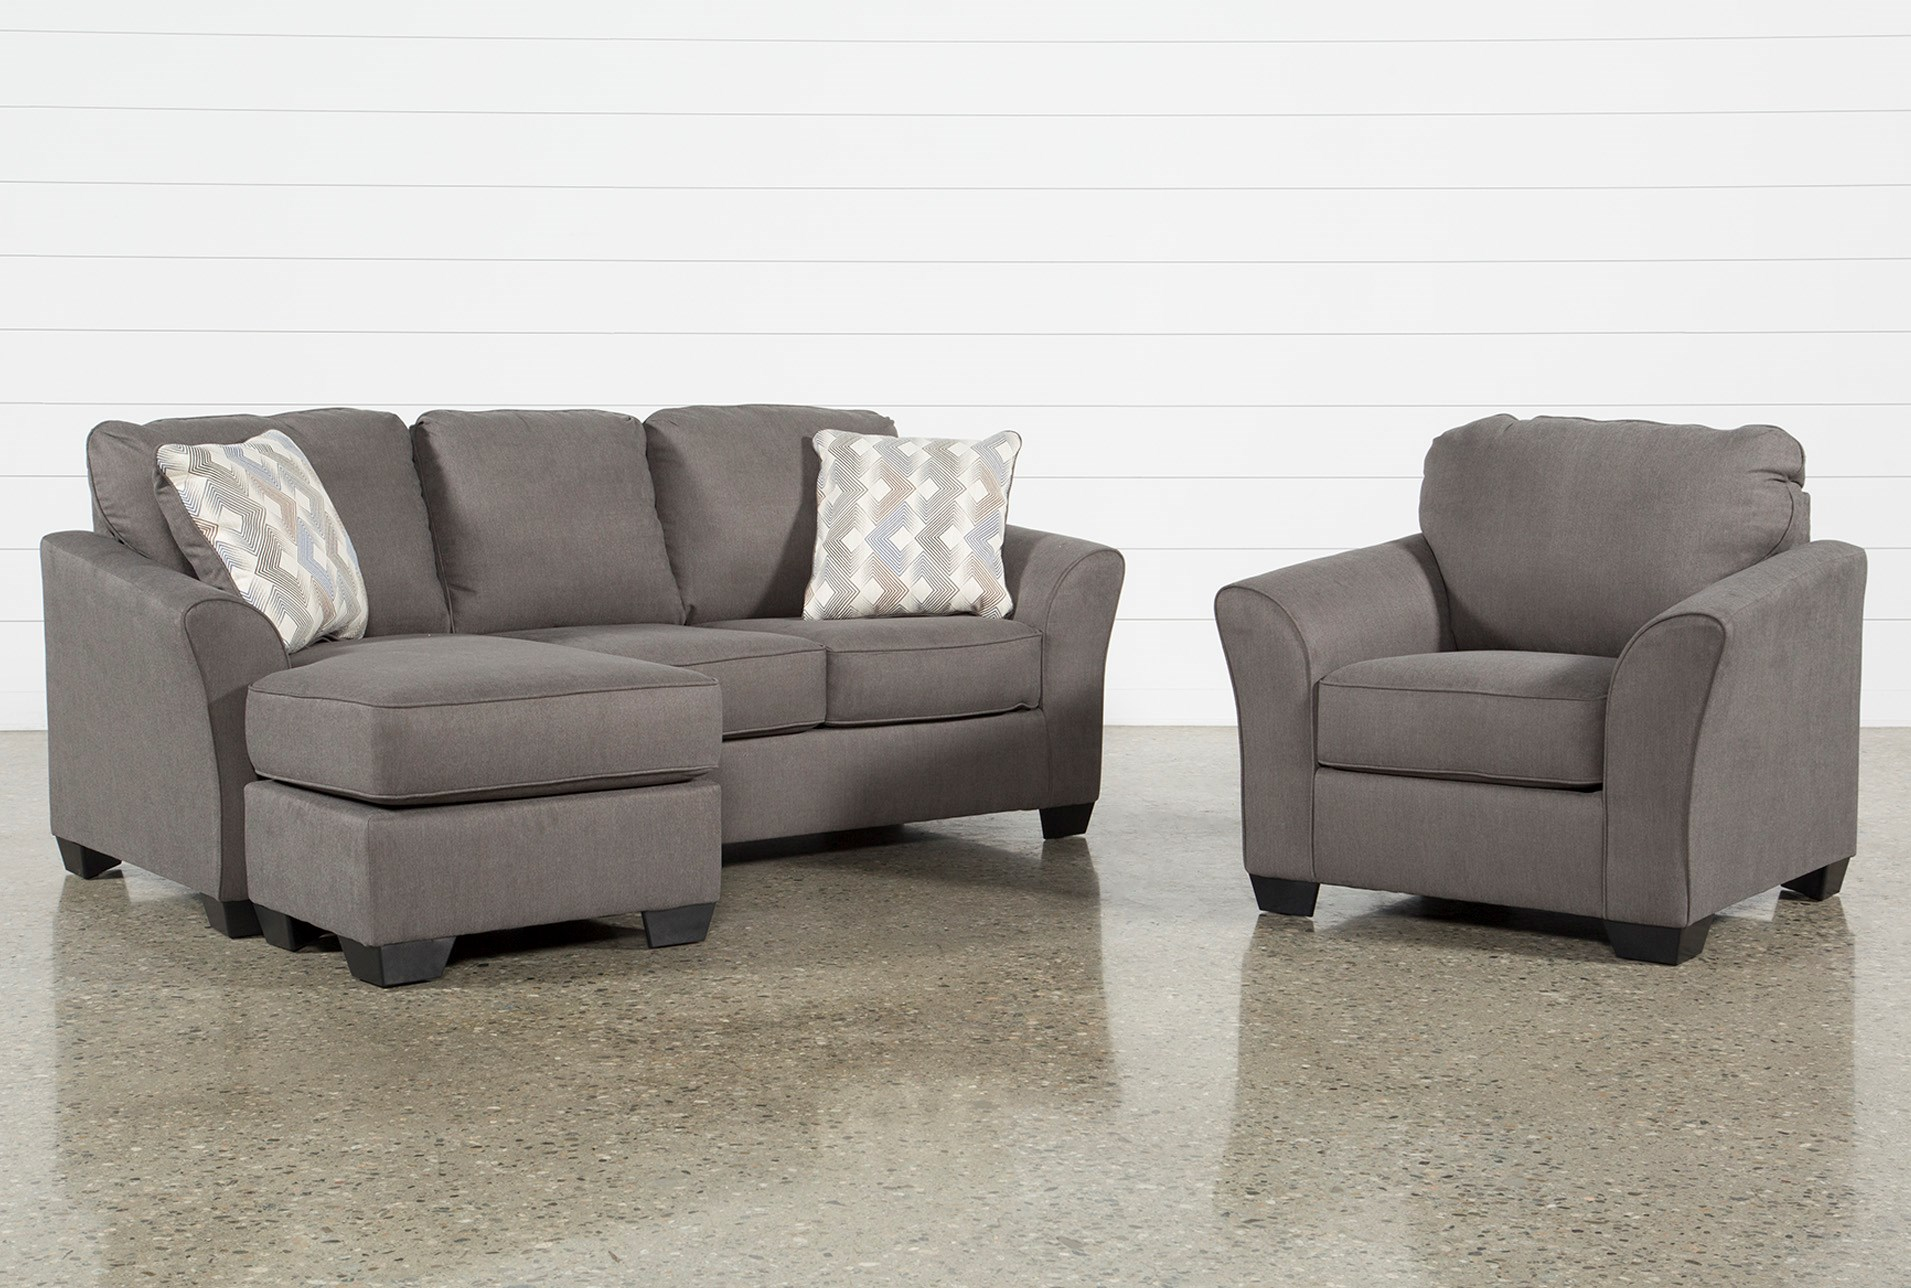 Tucker 2 Piece Living Room Set With Queen Sleeper And Arm Chair ...